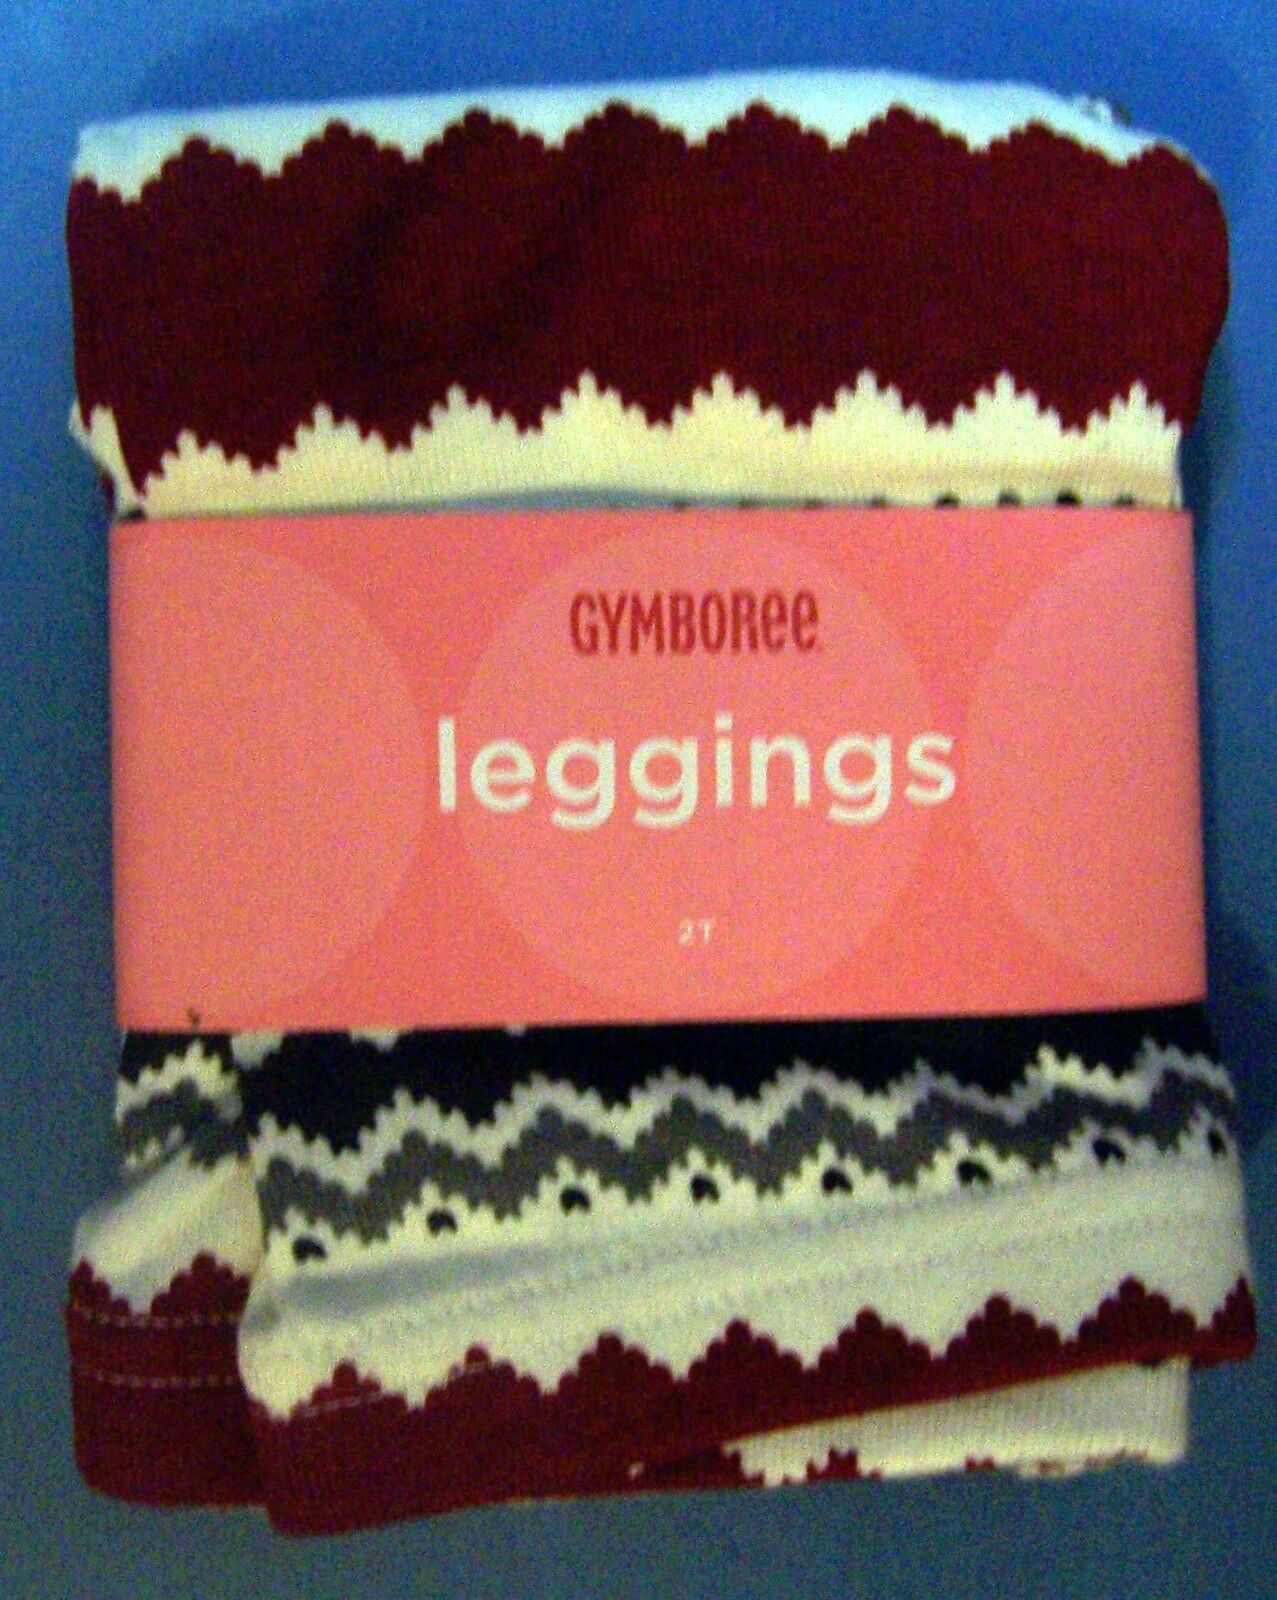 NWT GYMBOREE PENGUIN CHALET RED GRAY BLACK ZIGZAG LEGGINGS 2T   Free US Shipping